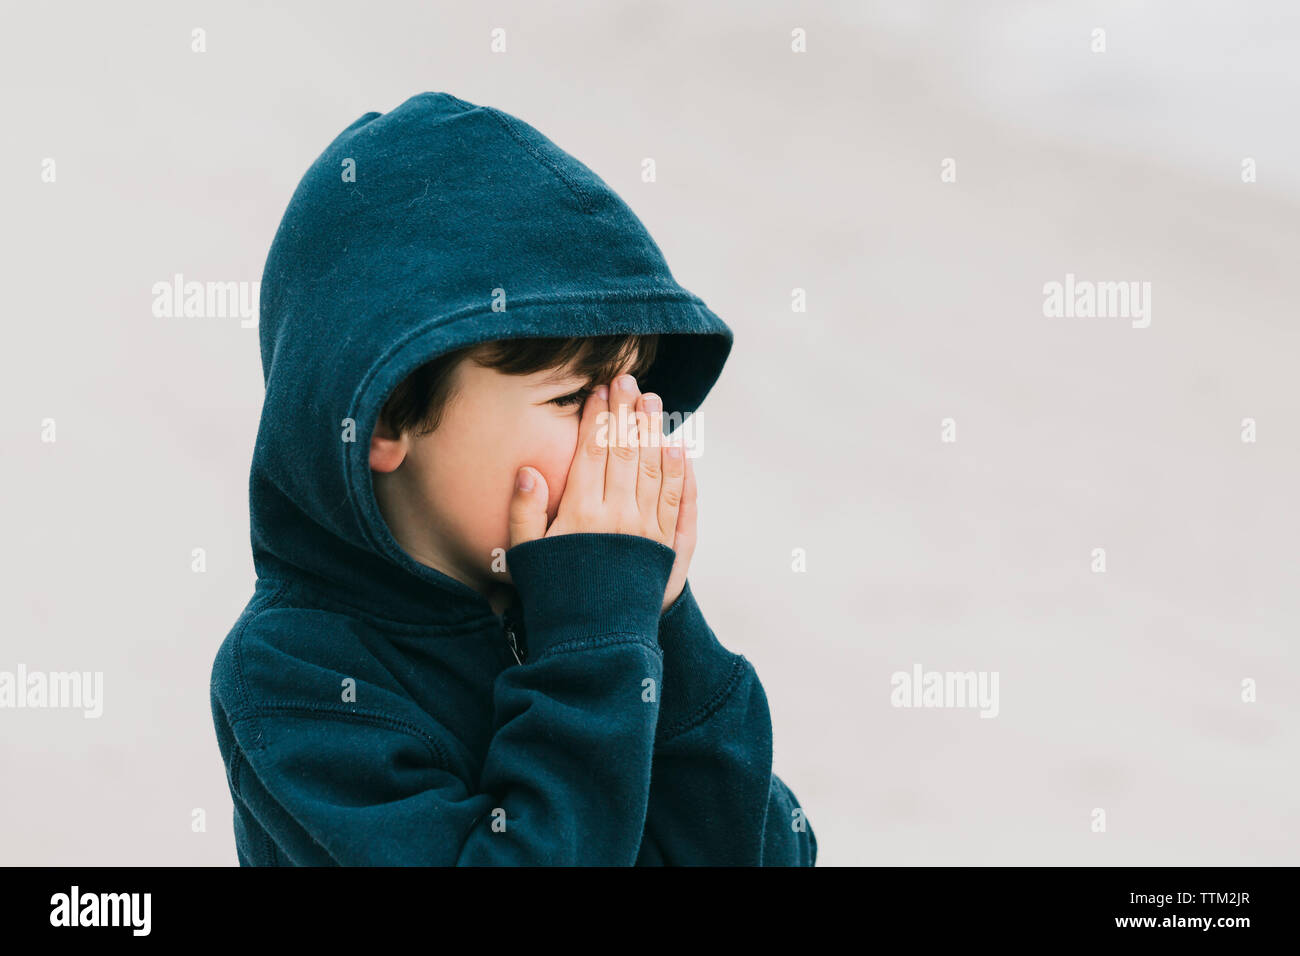 Boy with hands covering mouth standing at beach Stock Photo